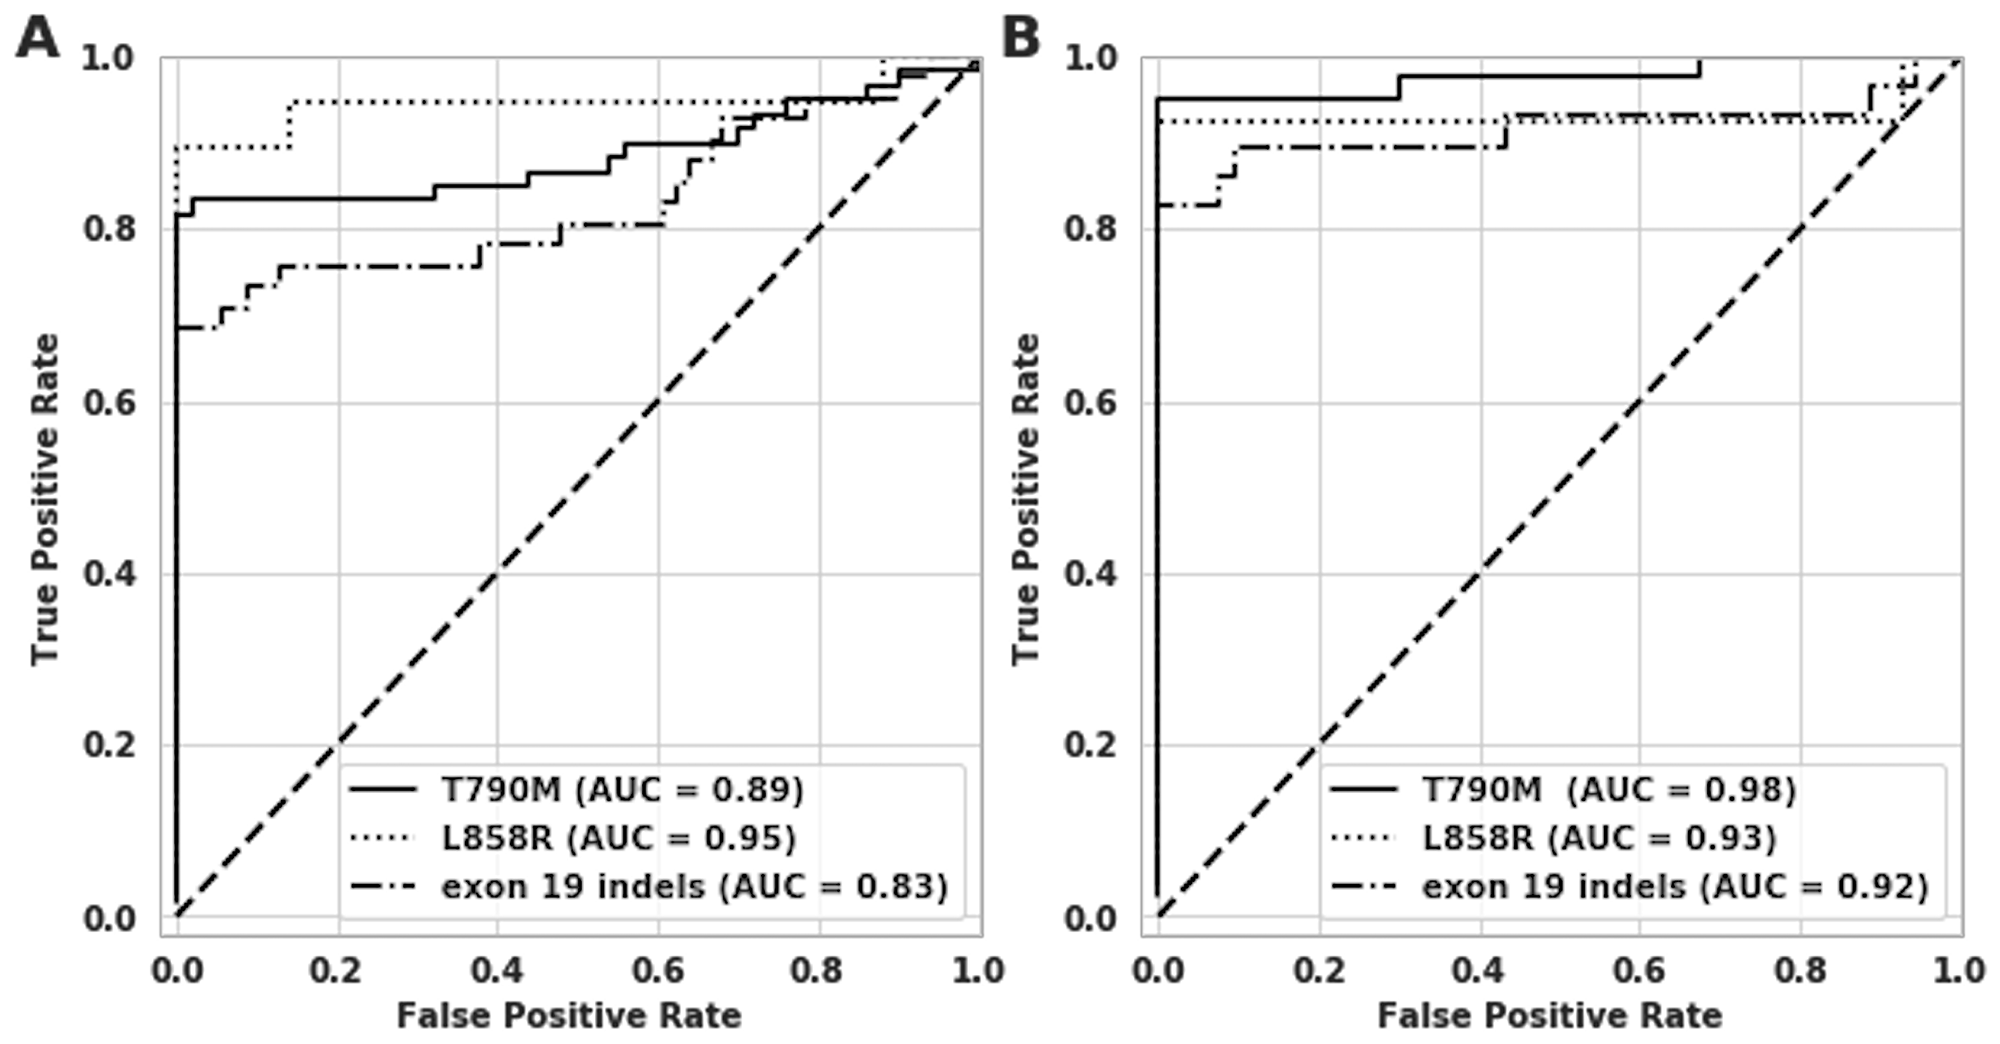 Receiver operating characteristic (ROC) curve analysis on clinical samples for T790M, L858R and exon 19 indels.